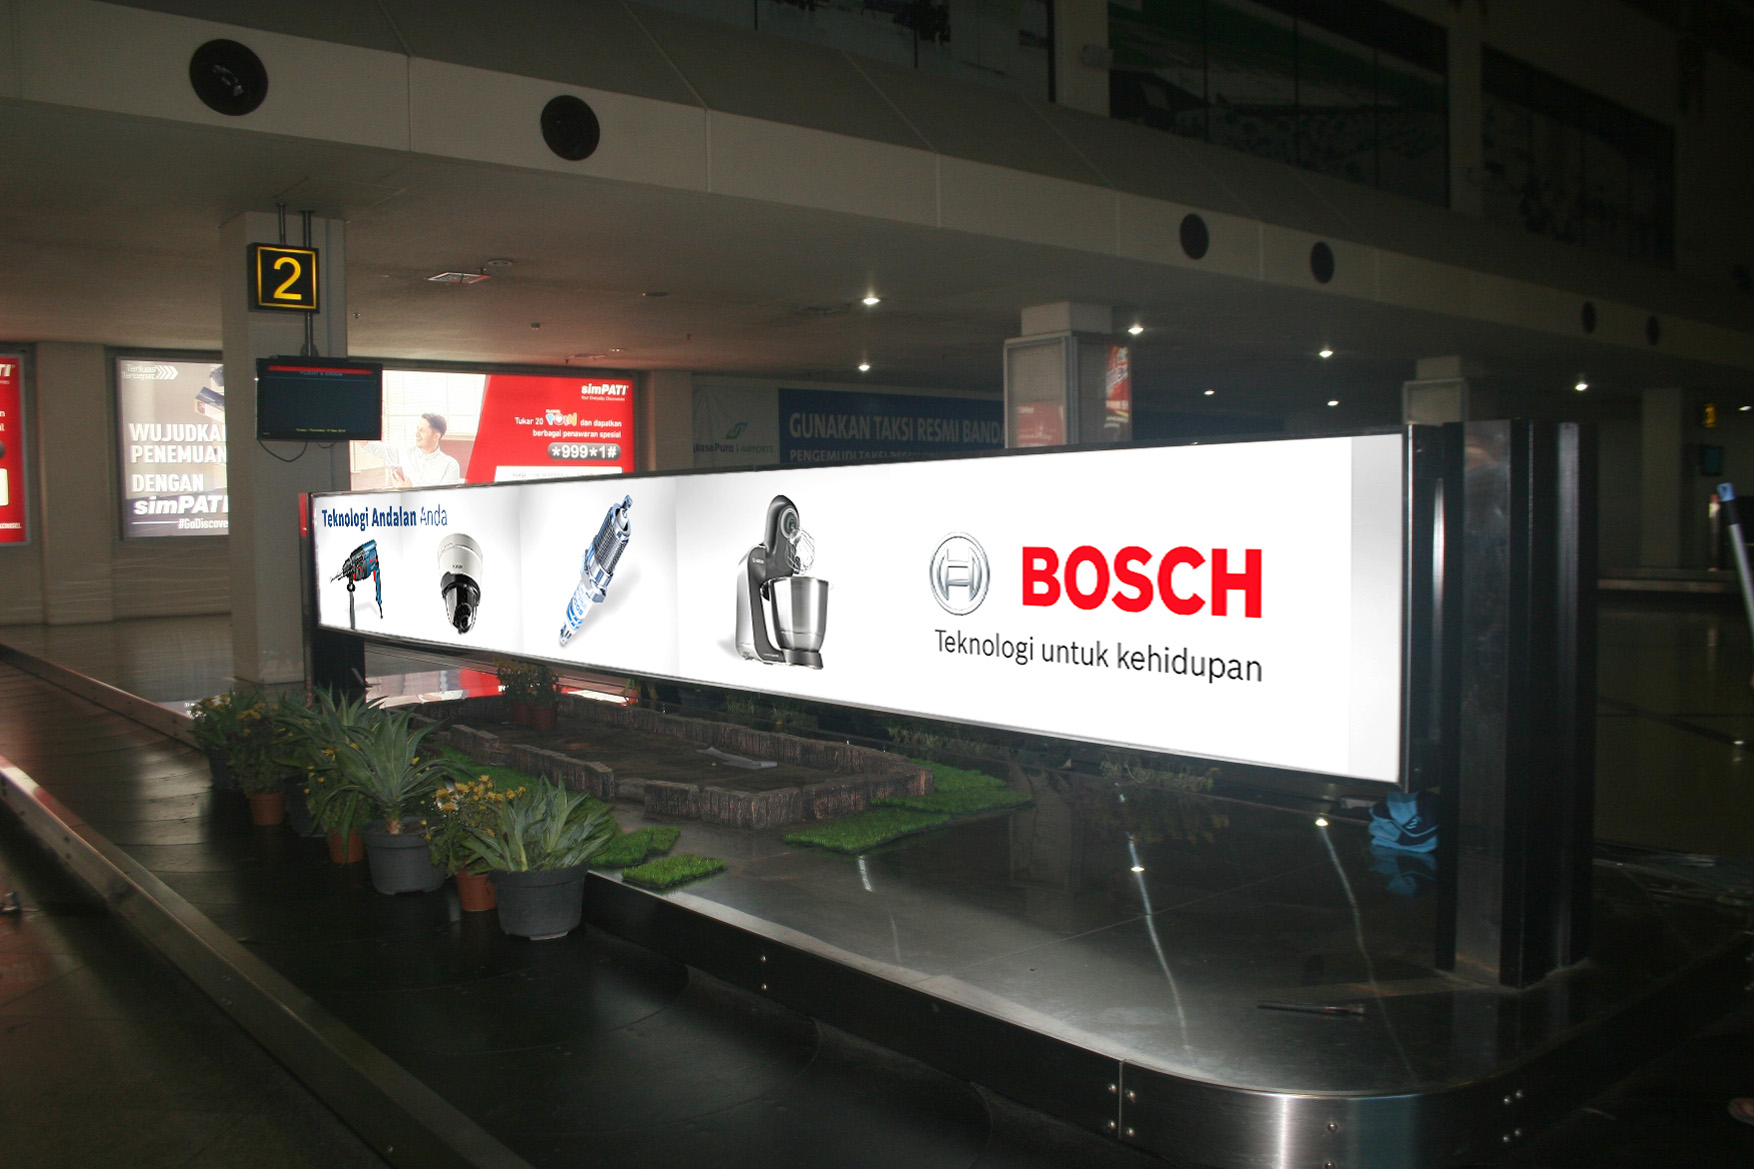 Bosch - Manufacture and Technology